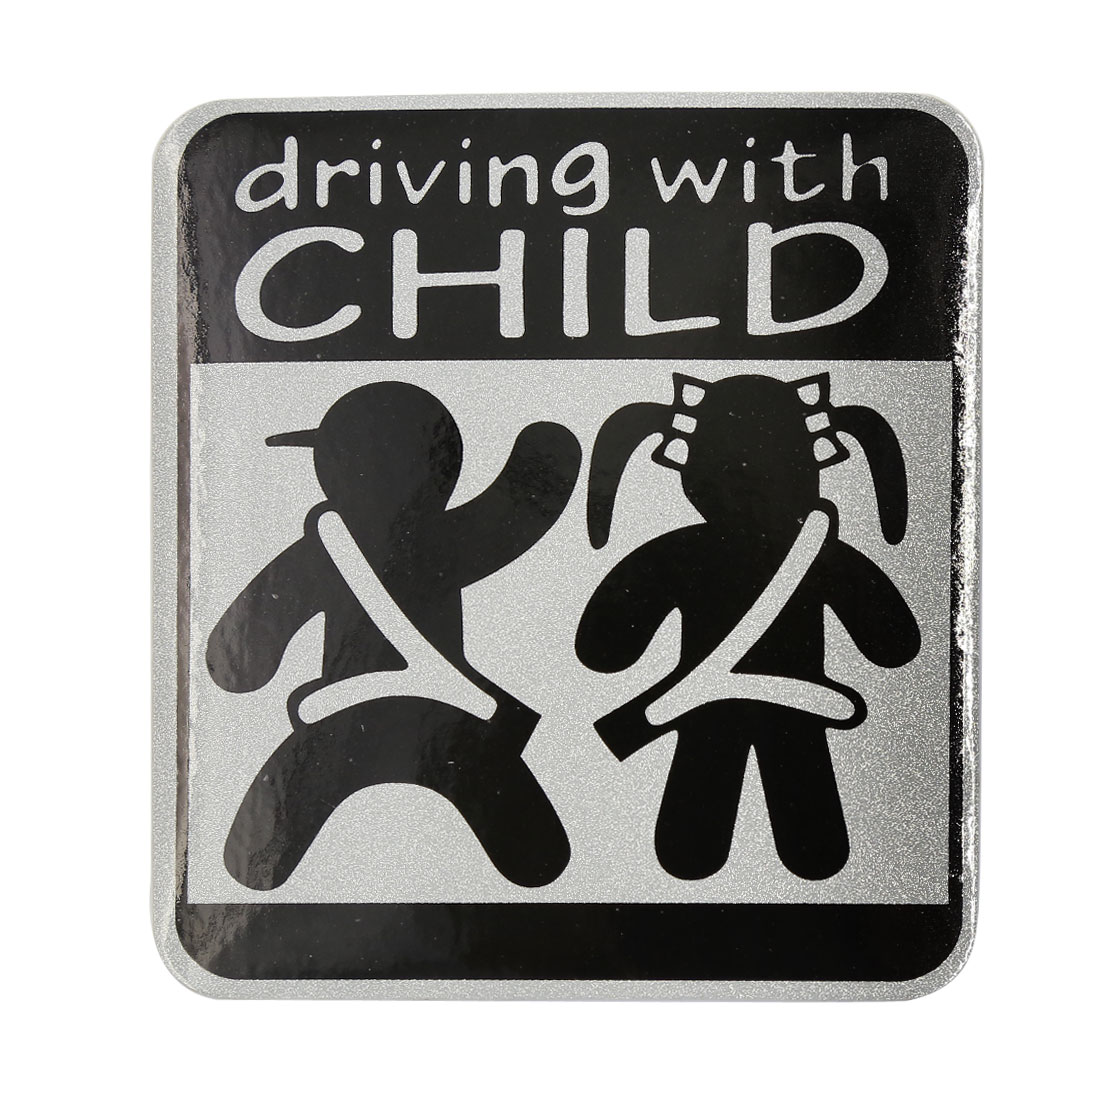 DRIVING WITH CHILD Pattern Warning Reflective Sticker Car Exterior Decor